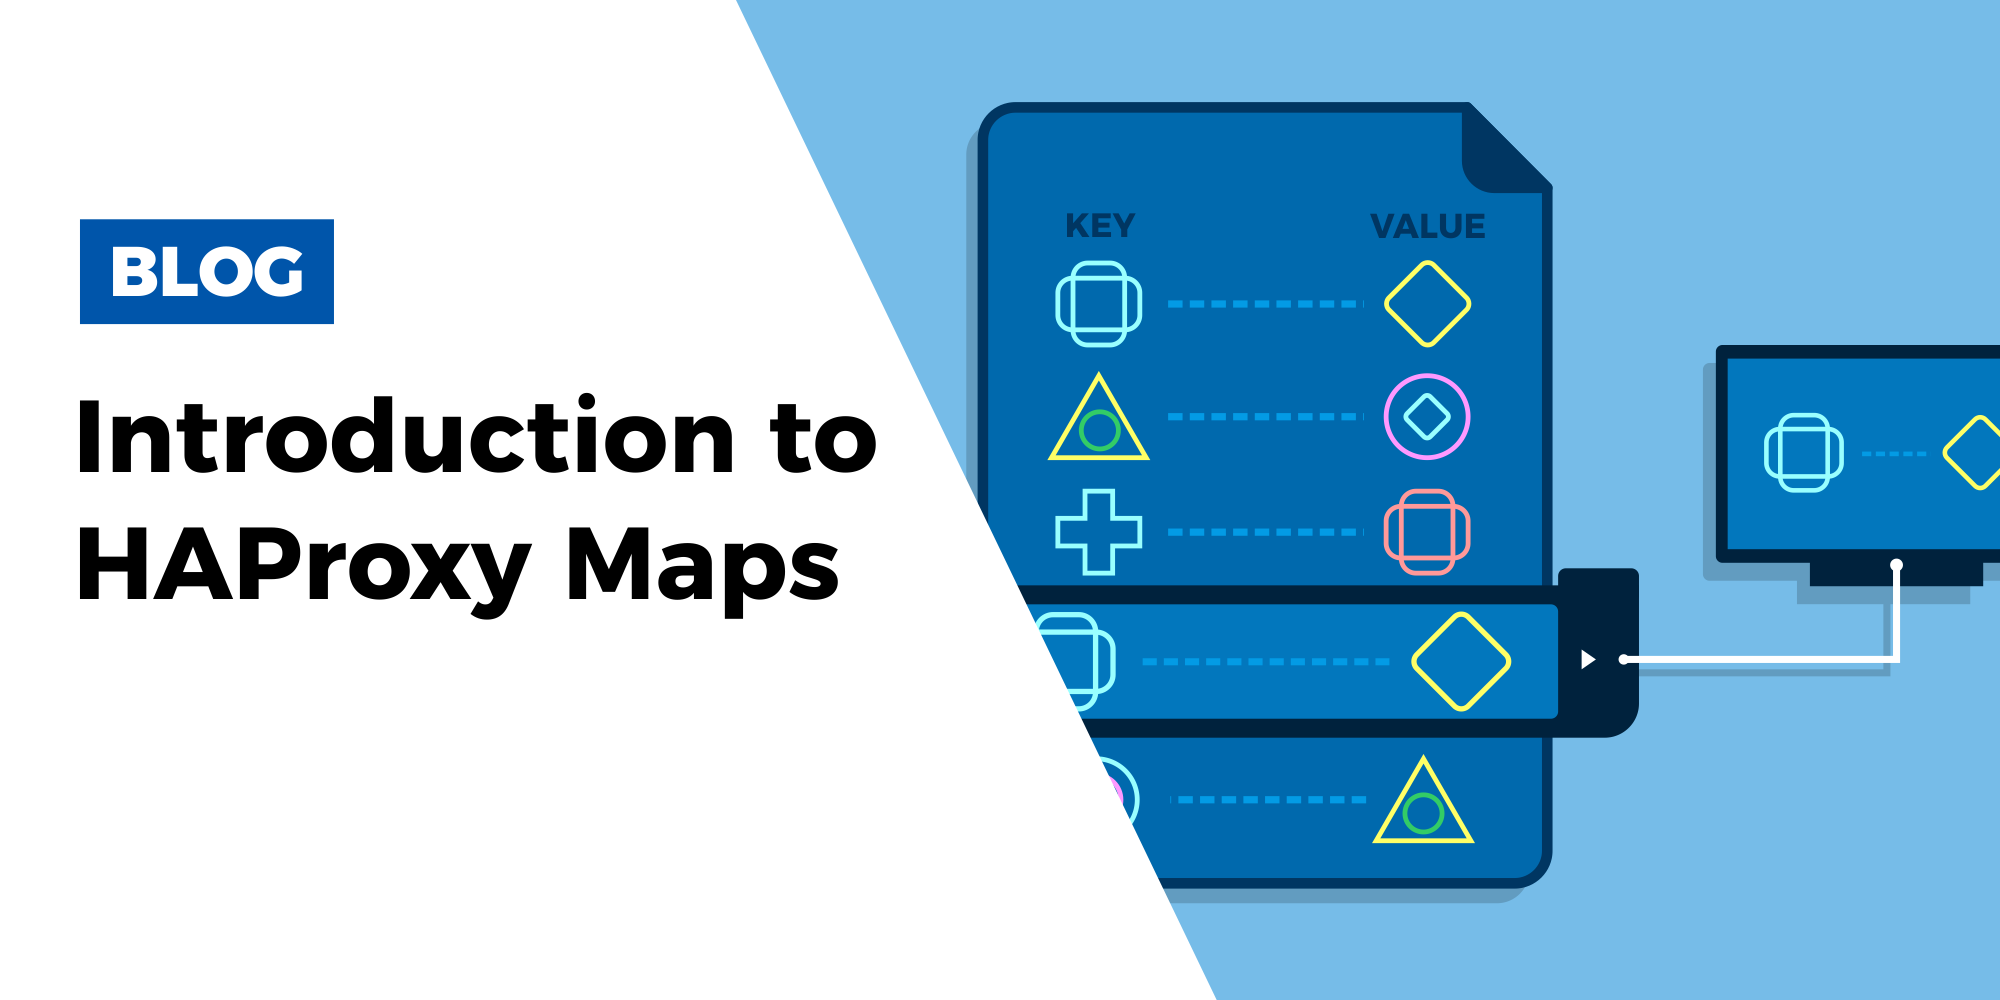 Introduction to HAProxy Maps - HAProxy Technologies